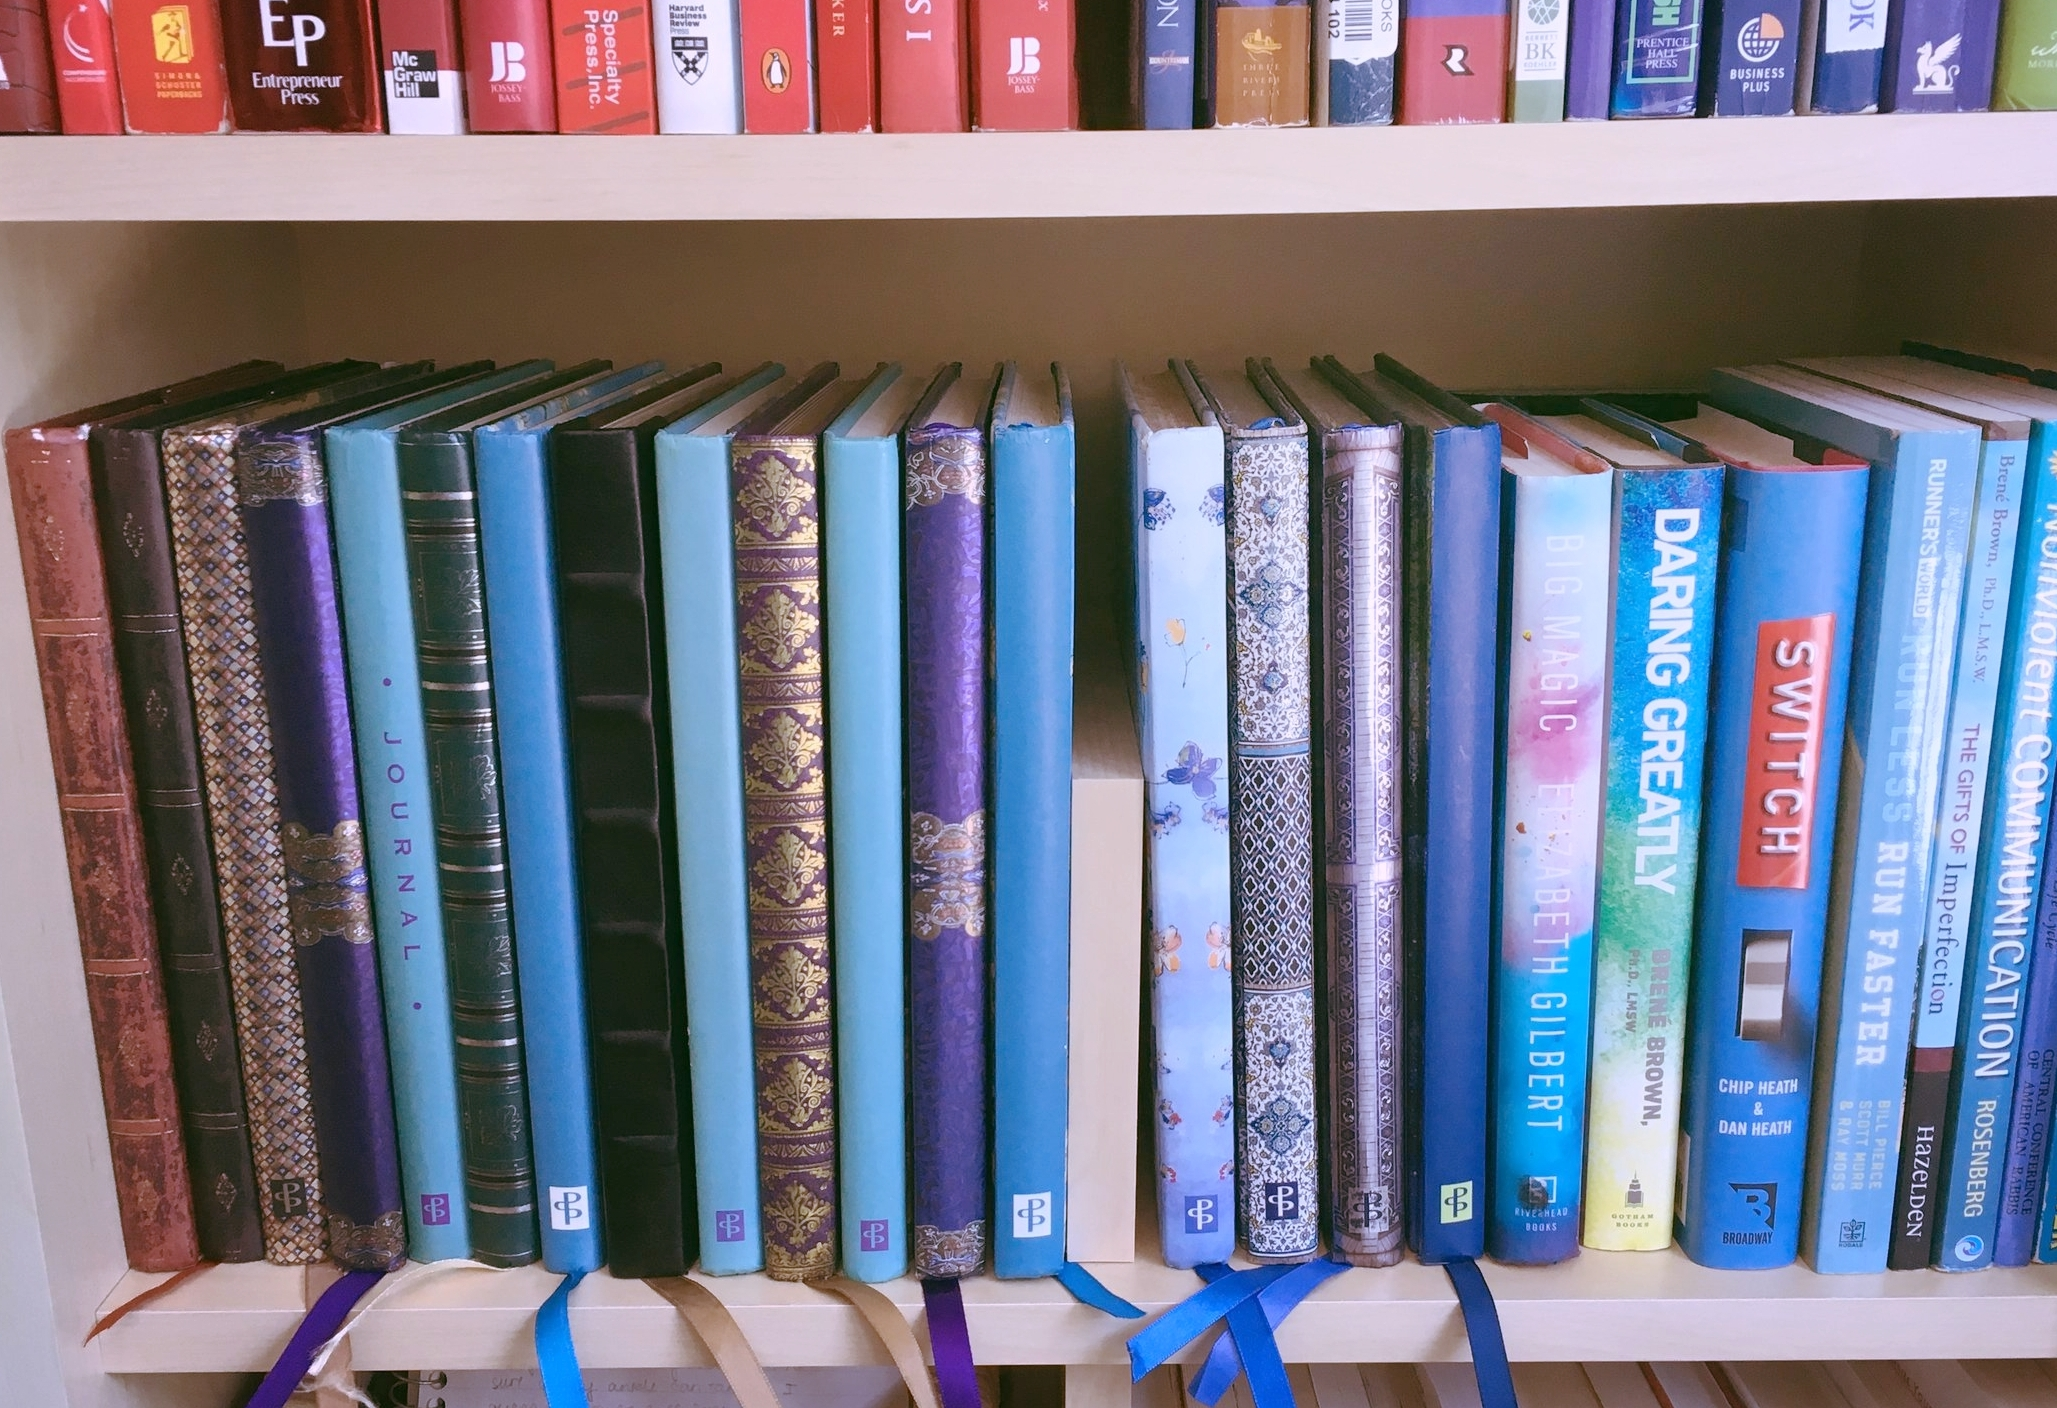 A little snapshot of some of my journals slowly overtaking the bookshelf, waiting to be shared :).